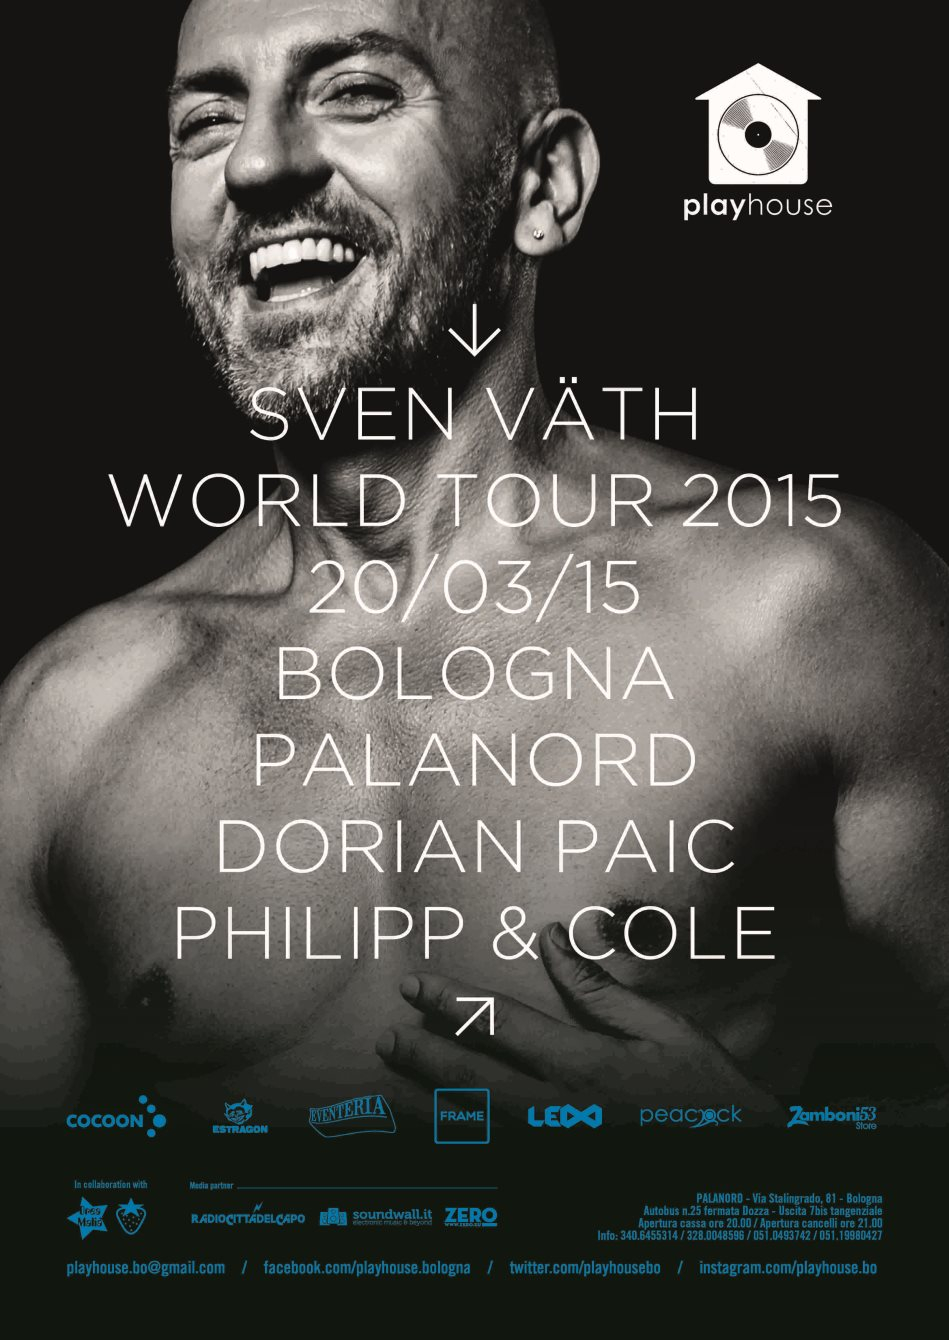 Page 1 | 20/03/2015 | Bologna | Playhouse #03 with Sven Väth at Palanord. Published by DjMaverix on Thursday, 19 March 2015 in Clubs and Discoteque (Events)